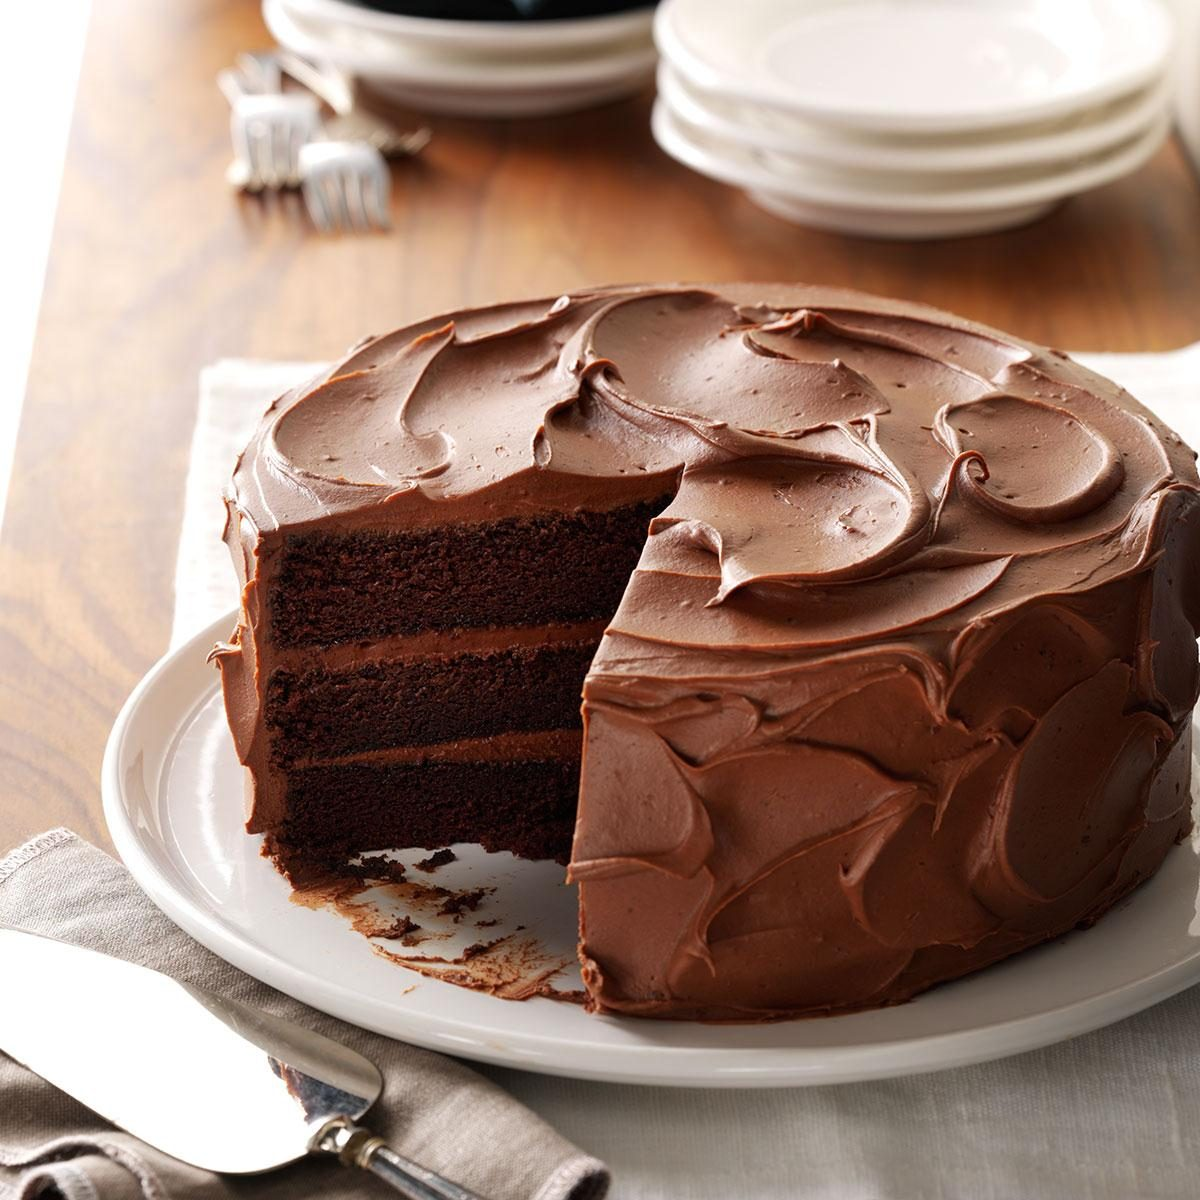 Our Top 10 Best Chocolate Recipes